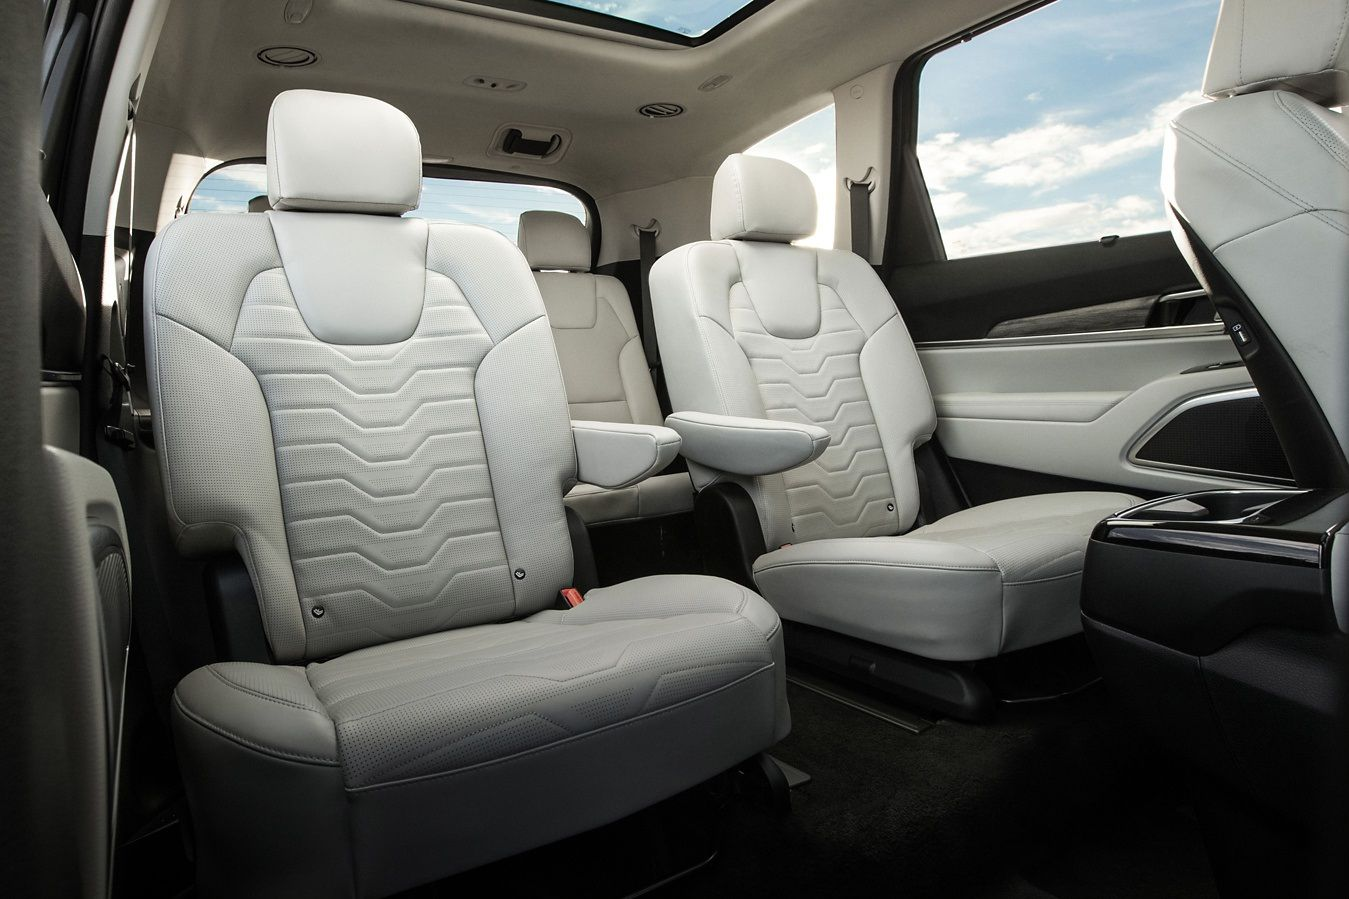 The Spacious Cabin of the 2020 Telluride